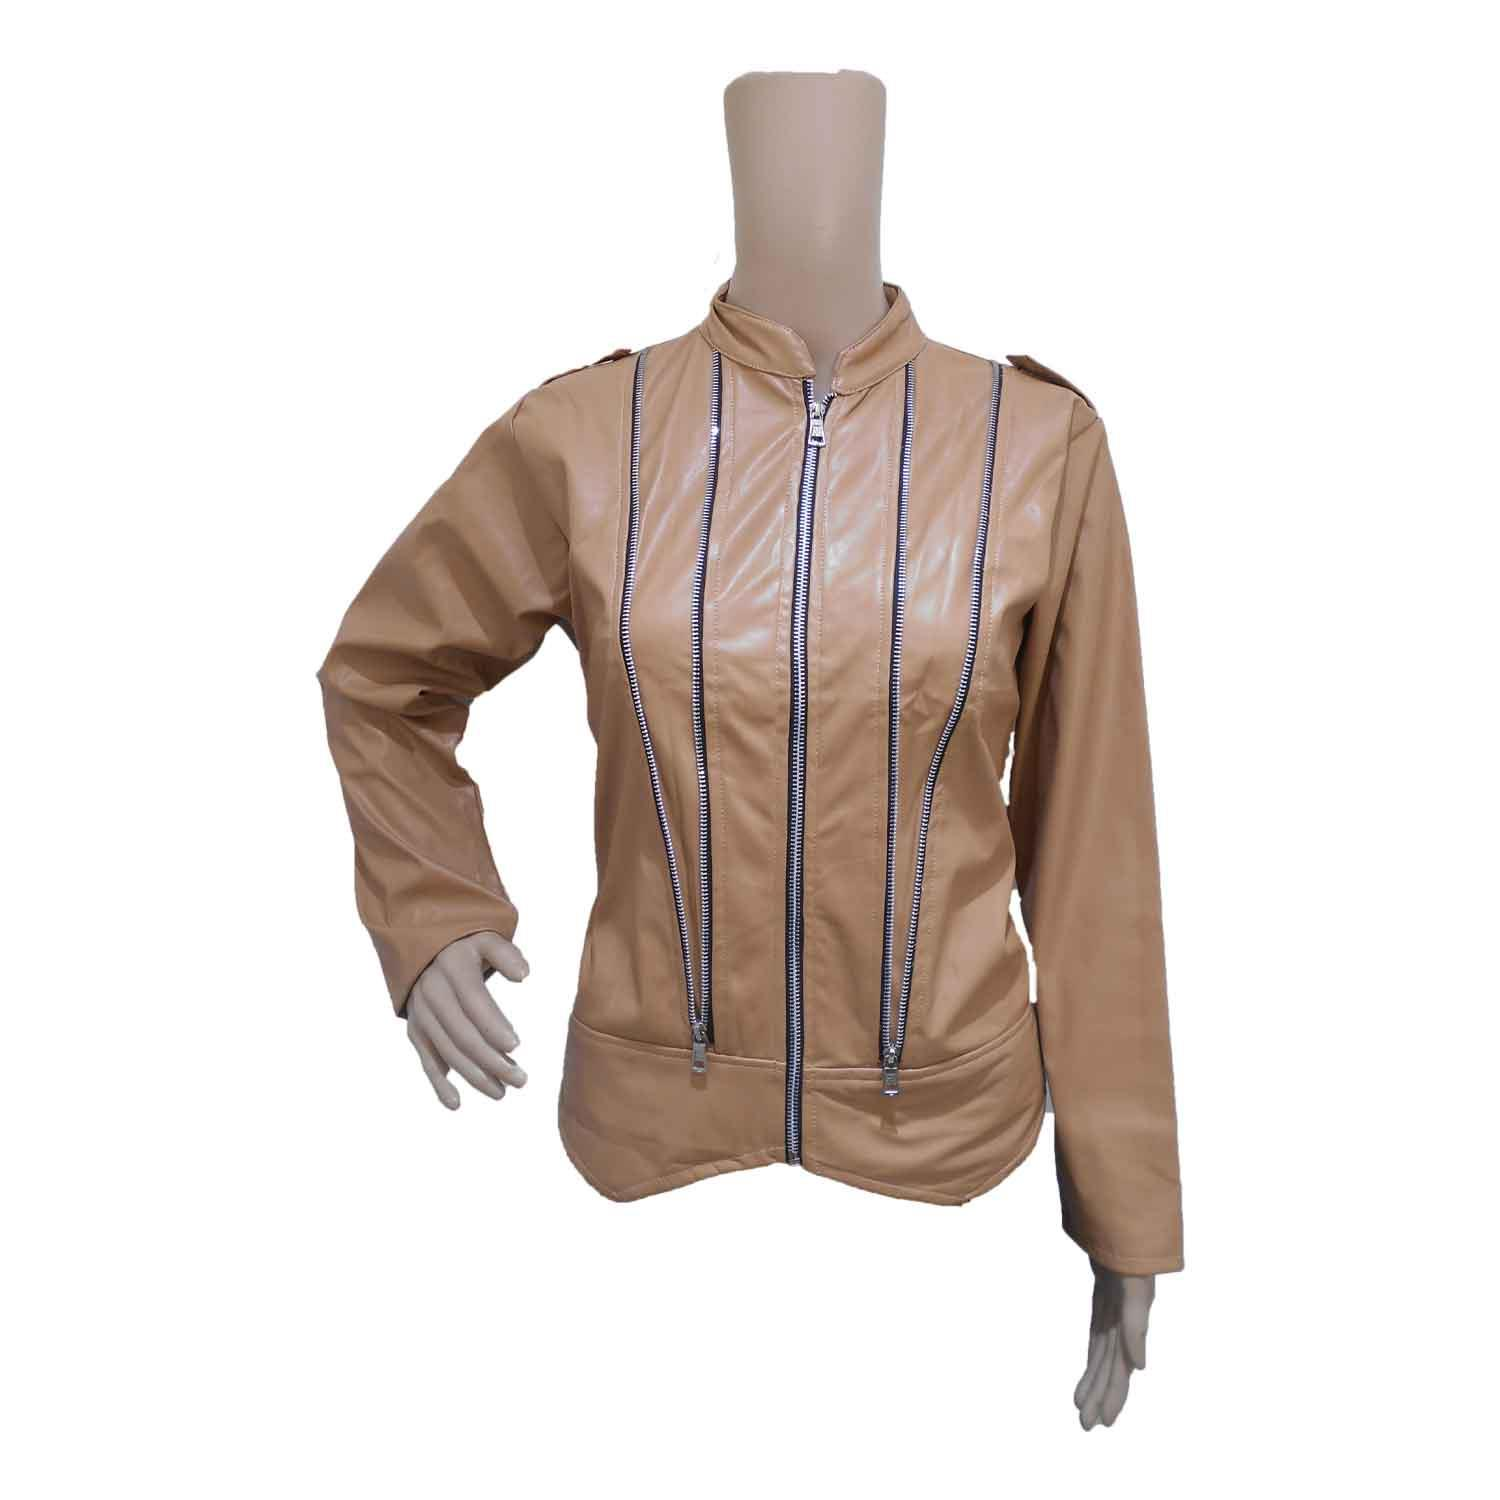 LADIE'S JACKET -1 LIGHT-BROWN FREE SIZE